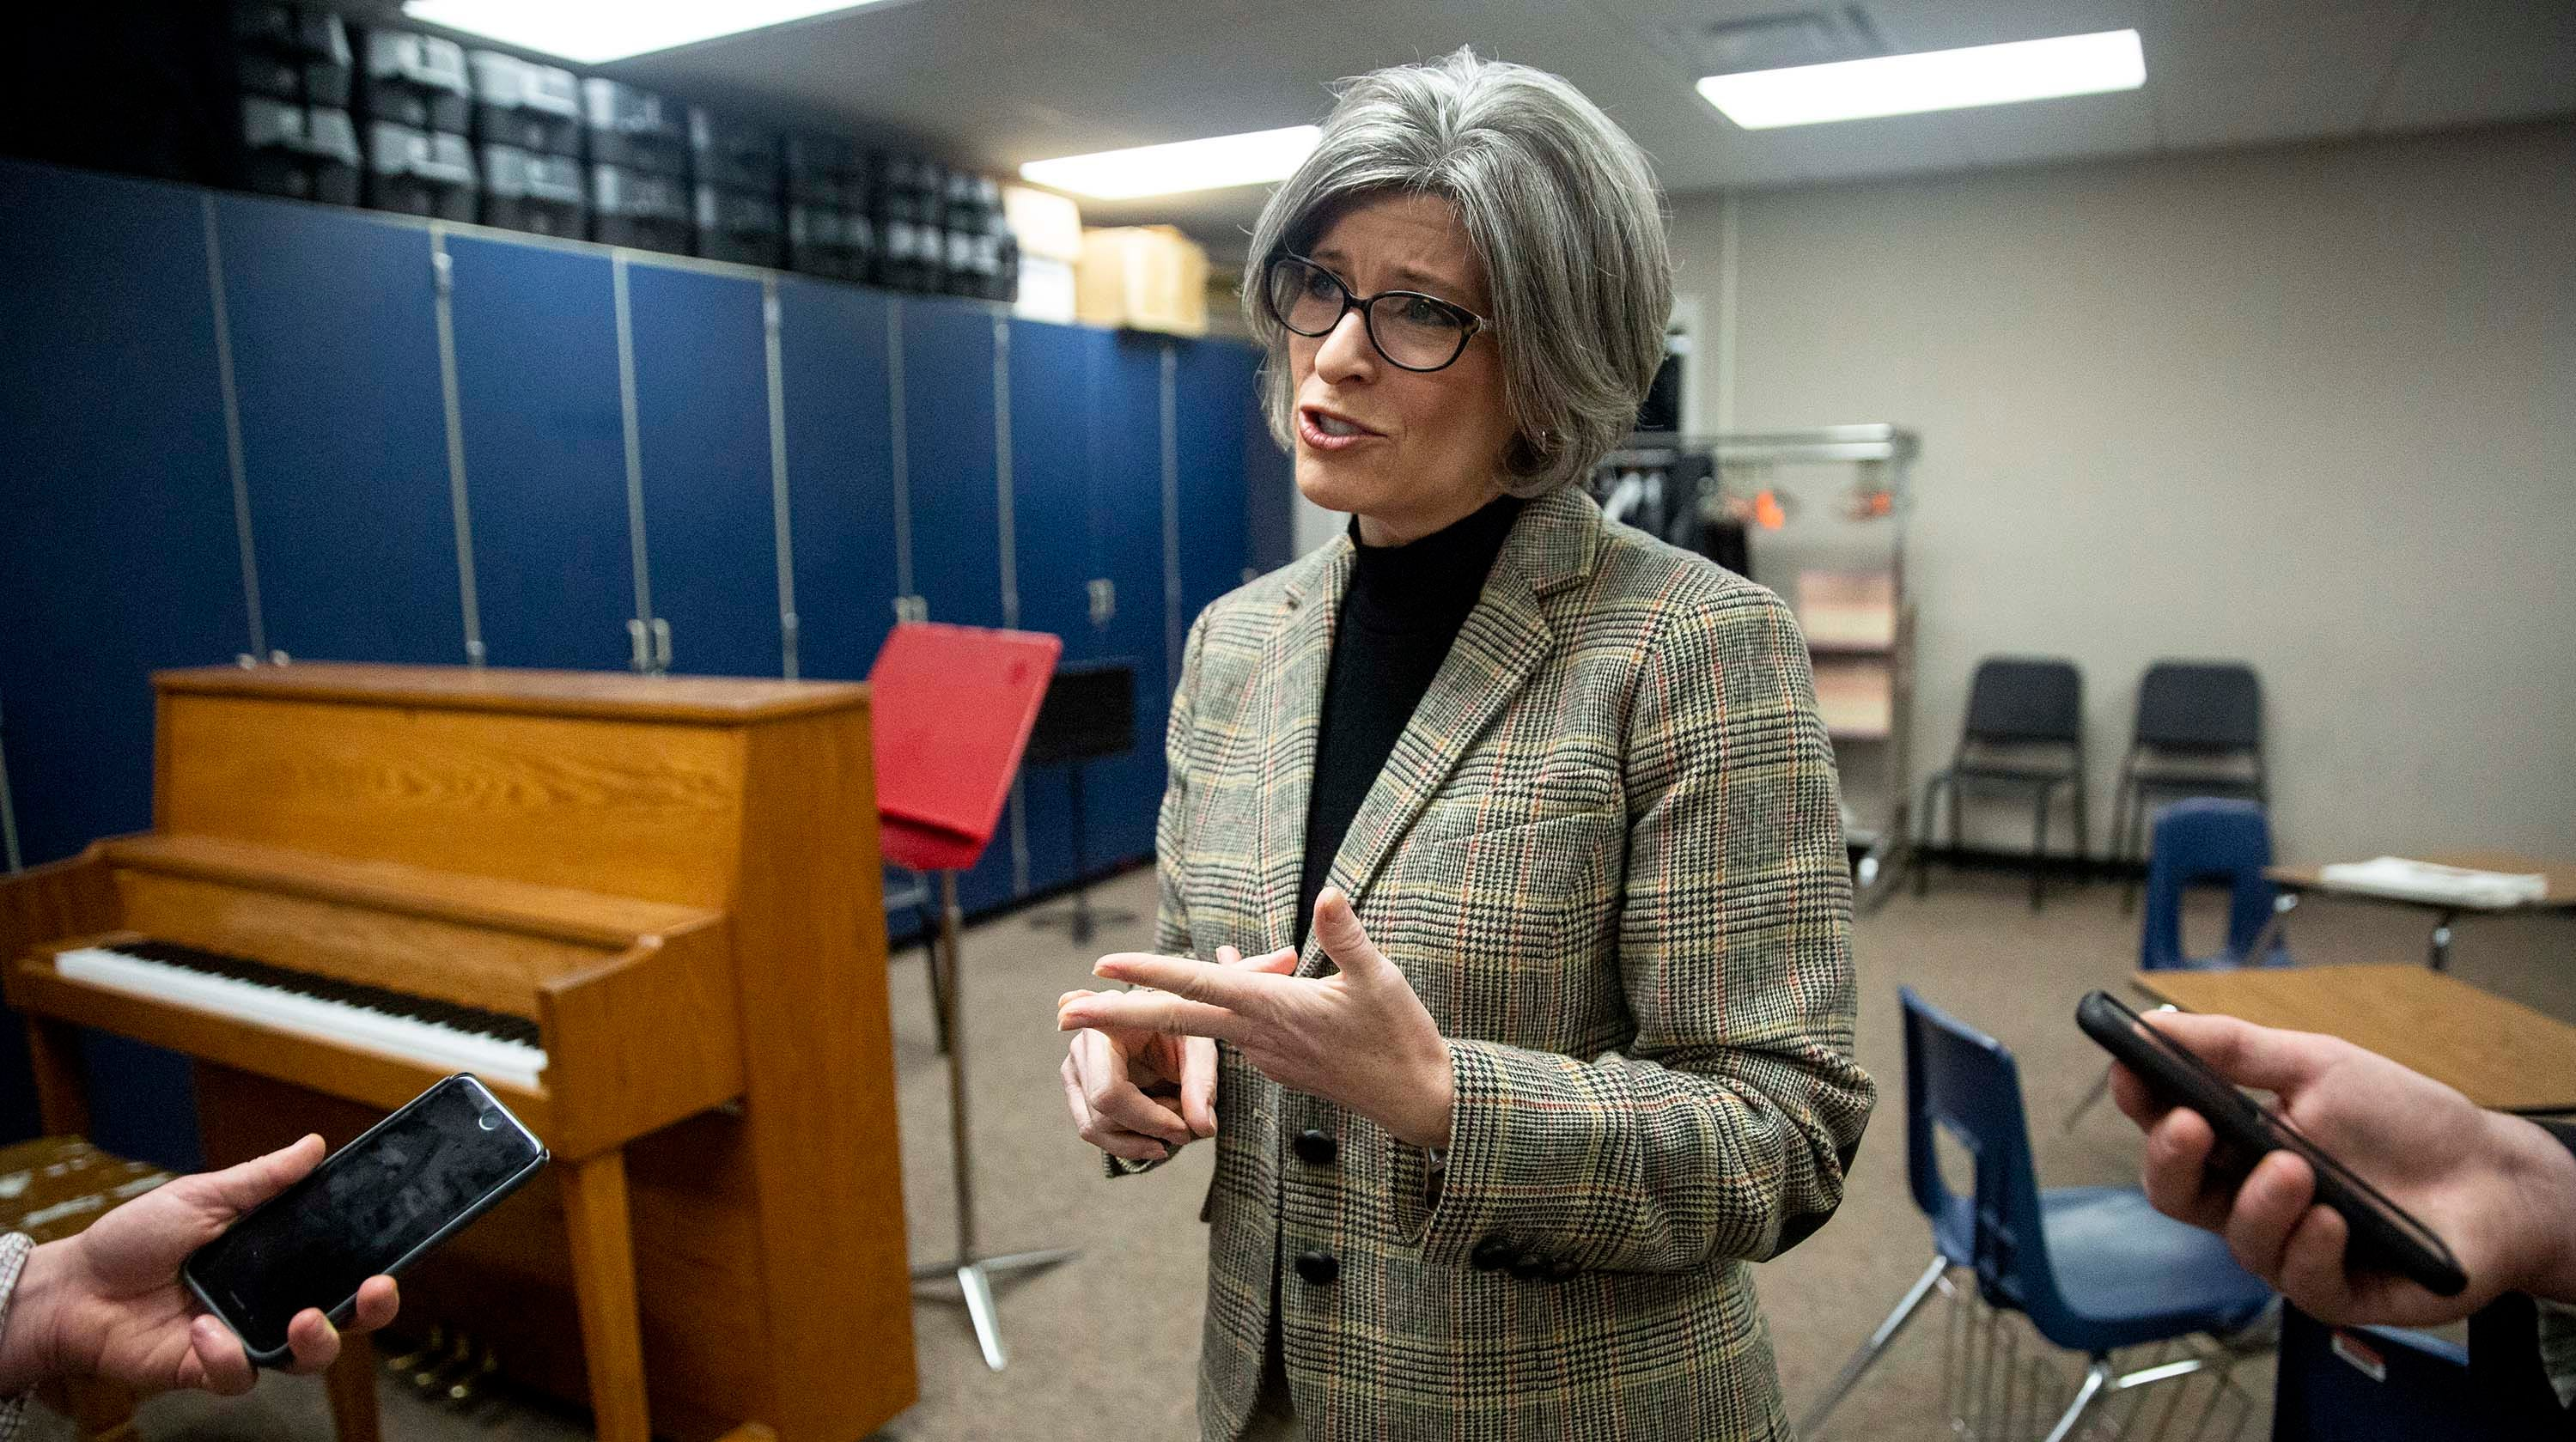 U.S. Sen. Joni Ernst, R-Red Oak, talks to reporters after holding a town hall meeting on Thursday, March 21, 2018, in the Adel DeSoto Minburn High School Auditorium in Adel.